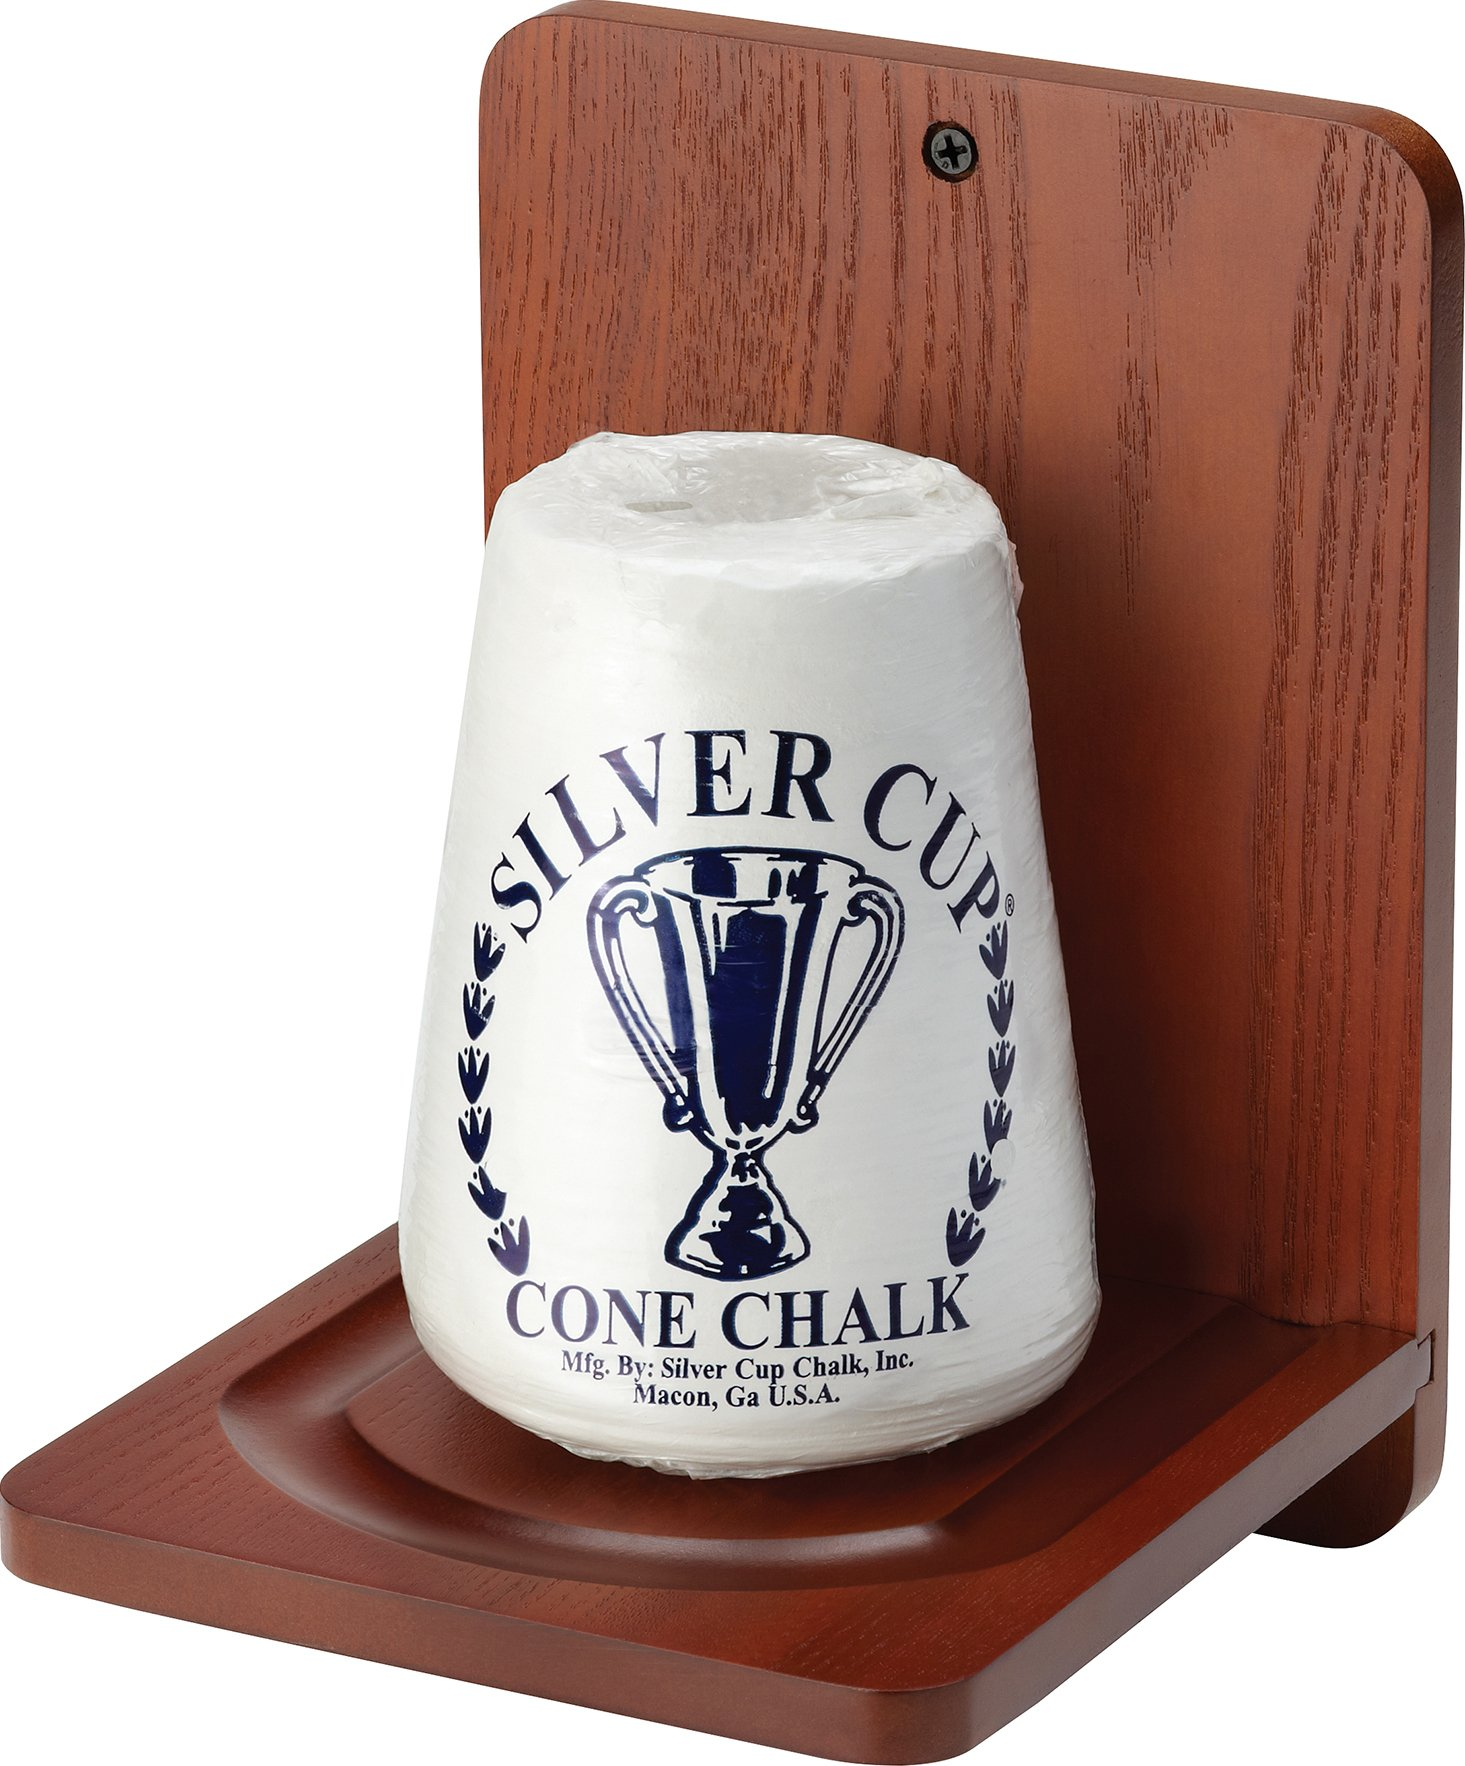 Charmant Pool Table Accessories Hand Chalk Pool Chalk Holder Wall Mount Wood Cone  Chalk